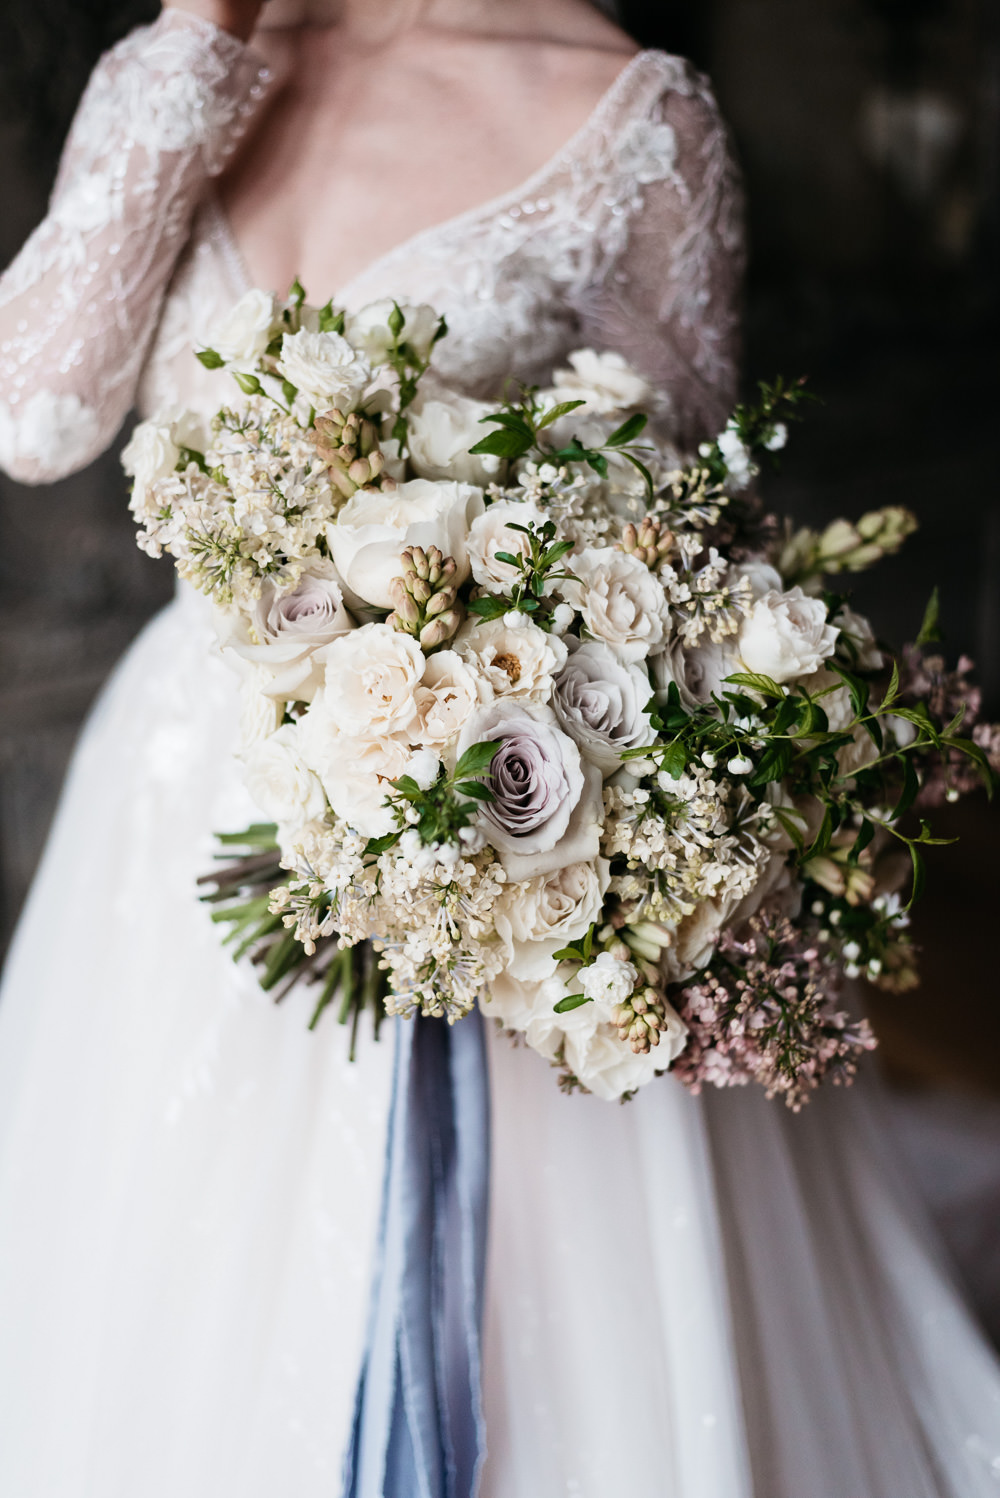 Bouquet Flowers Bride Bridal Rose Tuberose Lilac Blossom White Ribbons Swan Lake Wedding Ideas Salsabil Morrison